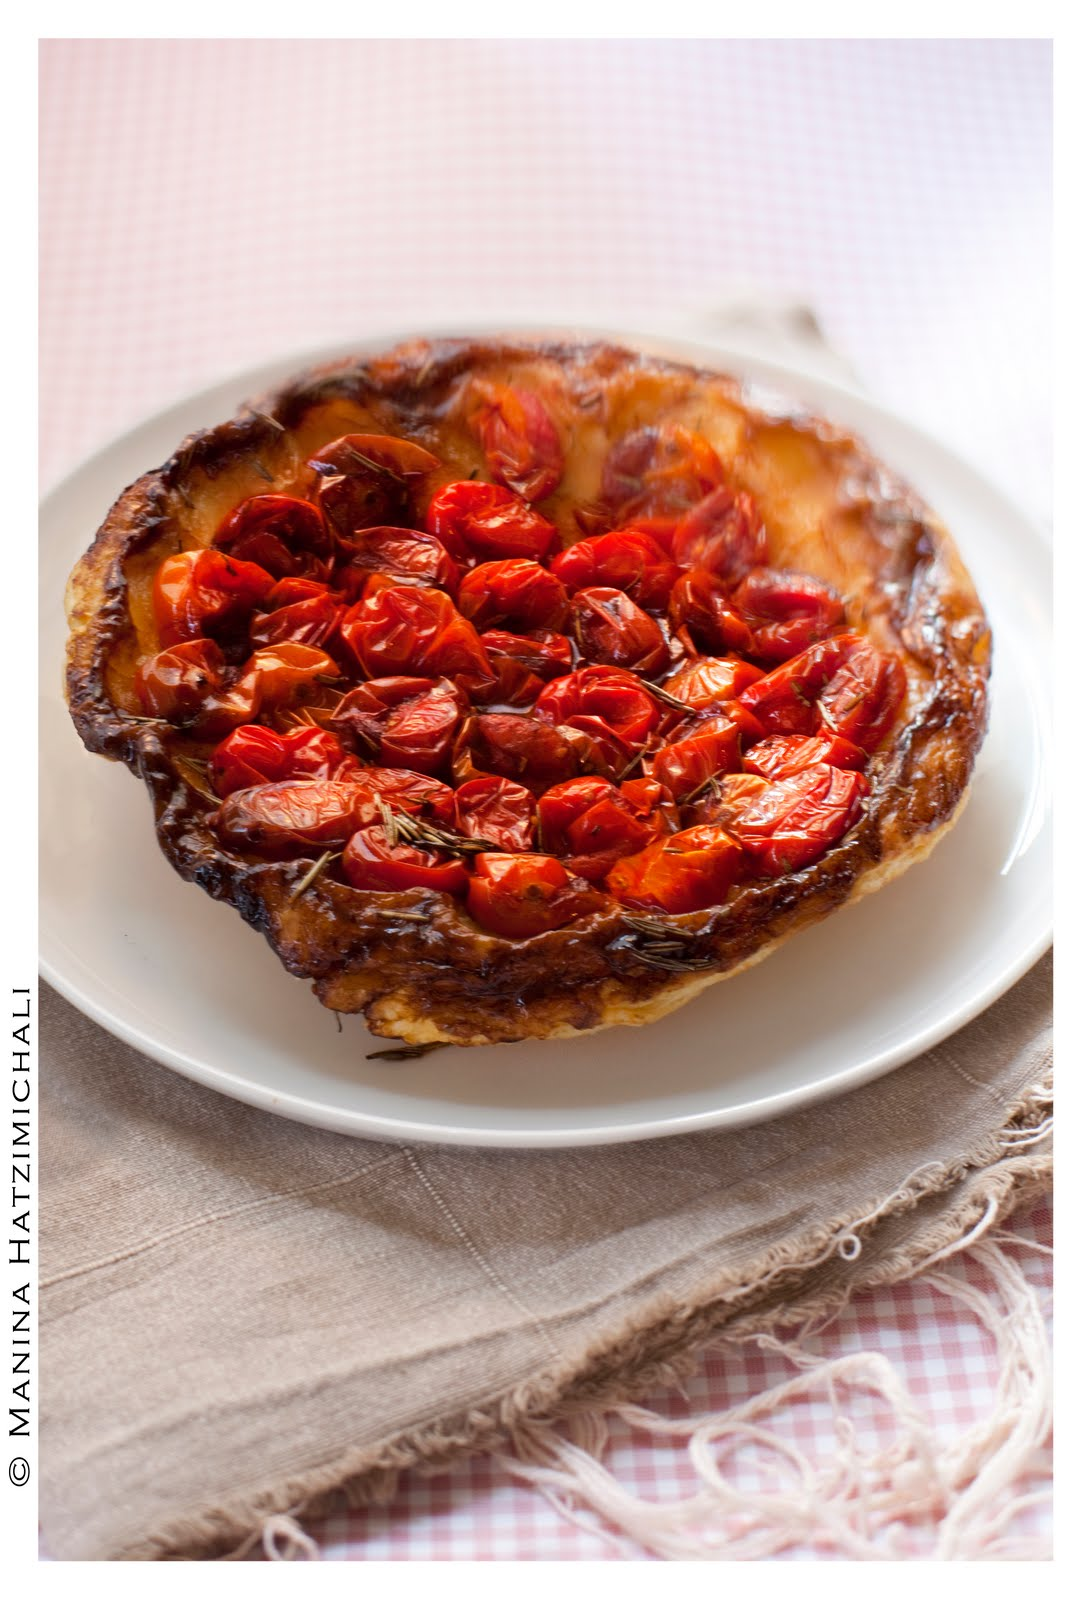 ... tatin apple and pomegranate tarte tatin tomato tatin tomatoes hydro